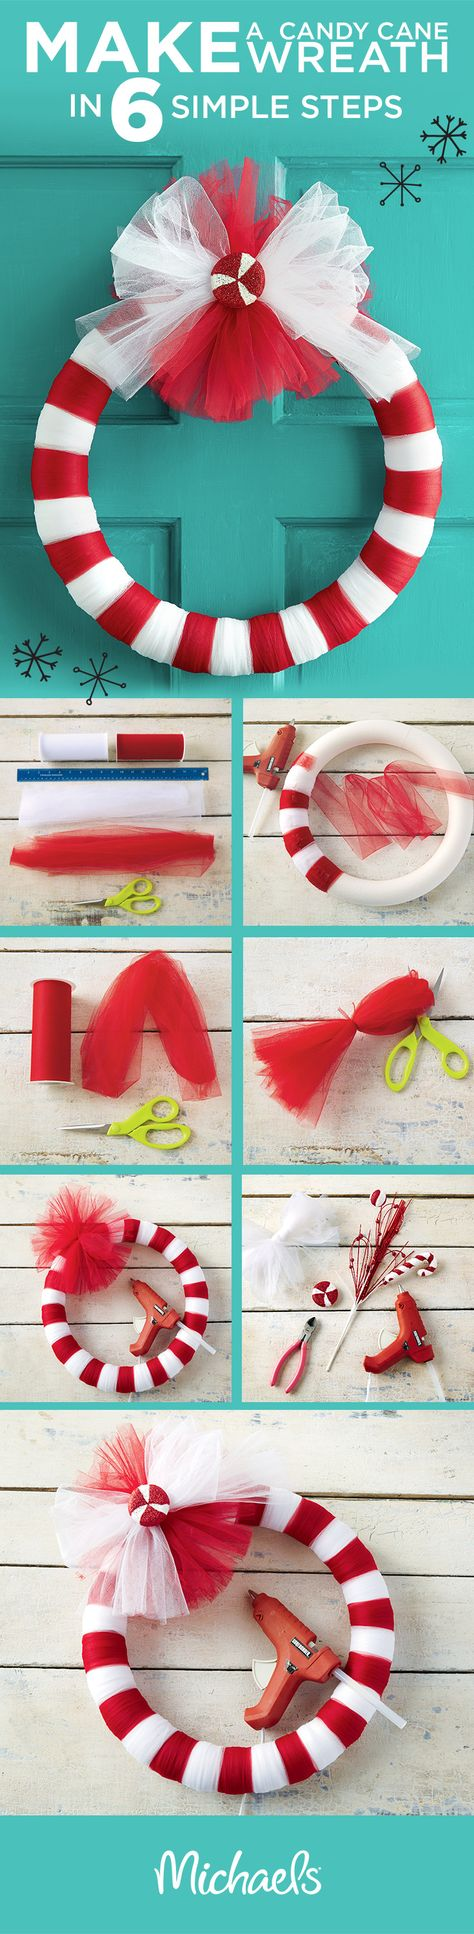 Make a candy cane wreath in 6 simple steps! First, wrap the wreath form with tulle, alternating red and white. Then, create a bow with red tulle. Finish the wreath by adding a peppermint decoration with hot glue. Get all of the supplies you need to make this wreath at your local Michaels store.